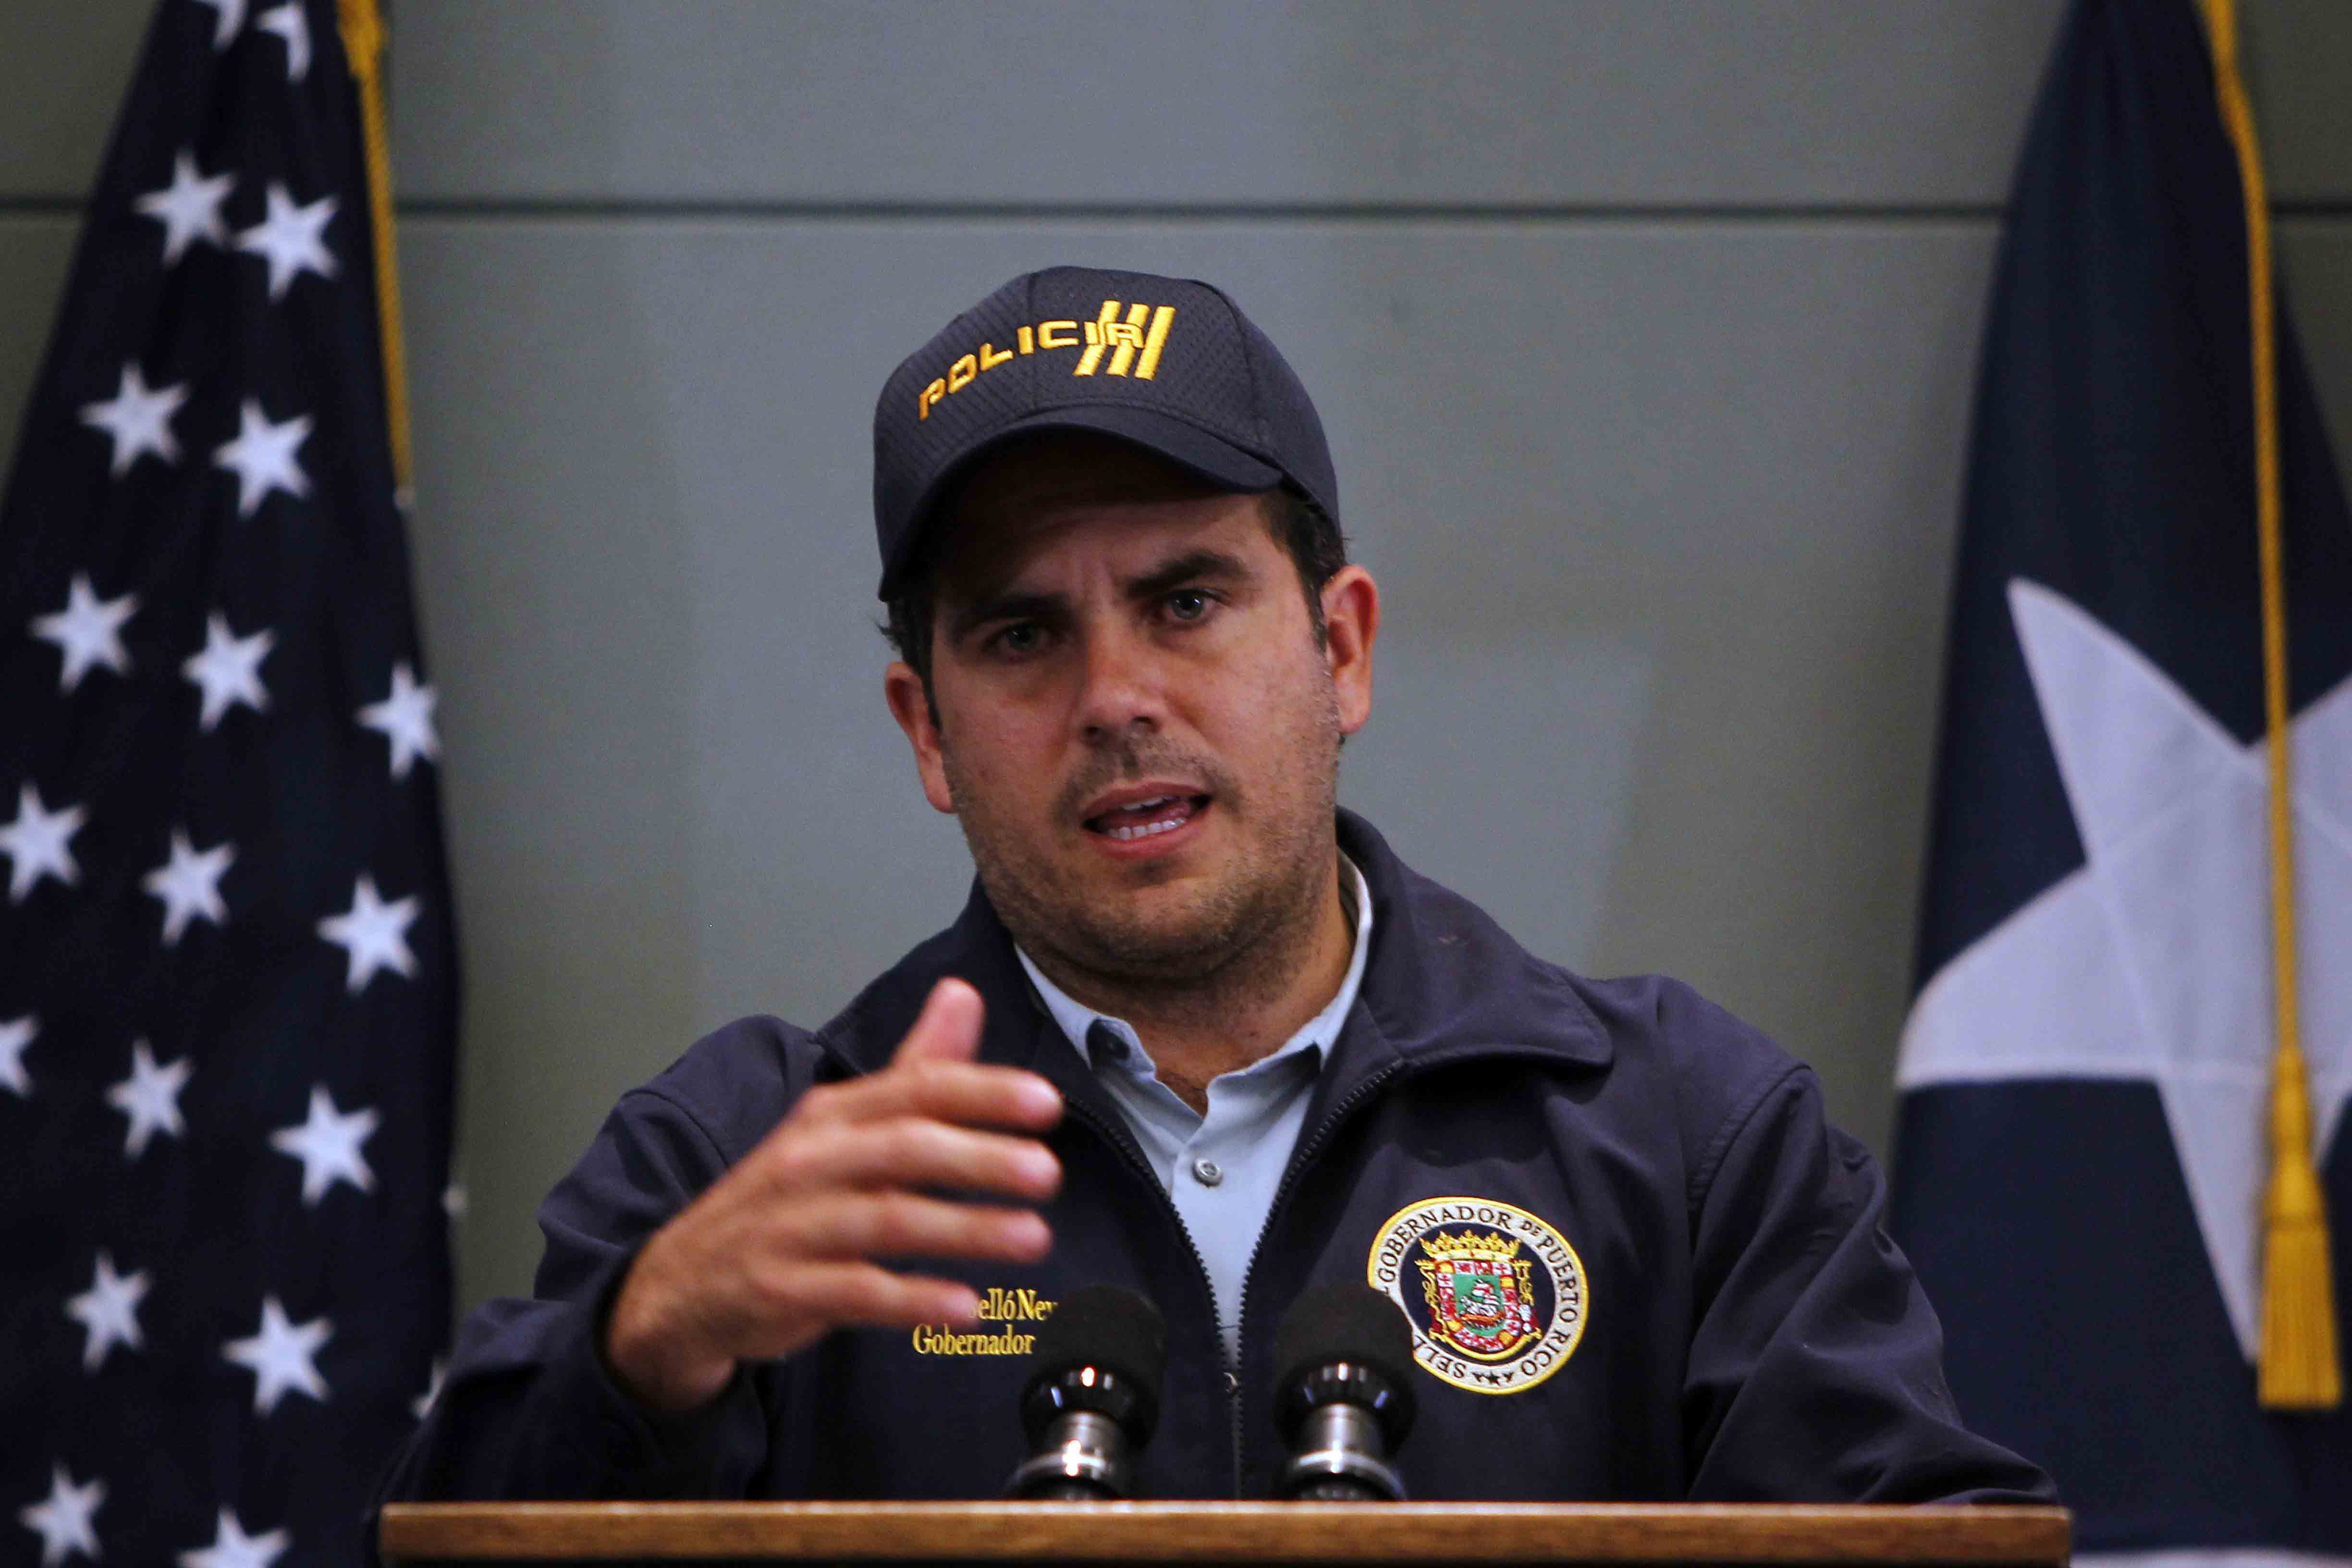 Puerto Rico's Governor Ricardo Rossello speaks to the media during a press conference in San Juan, Puerto Rico, on September 24, 2017.